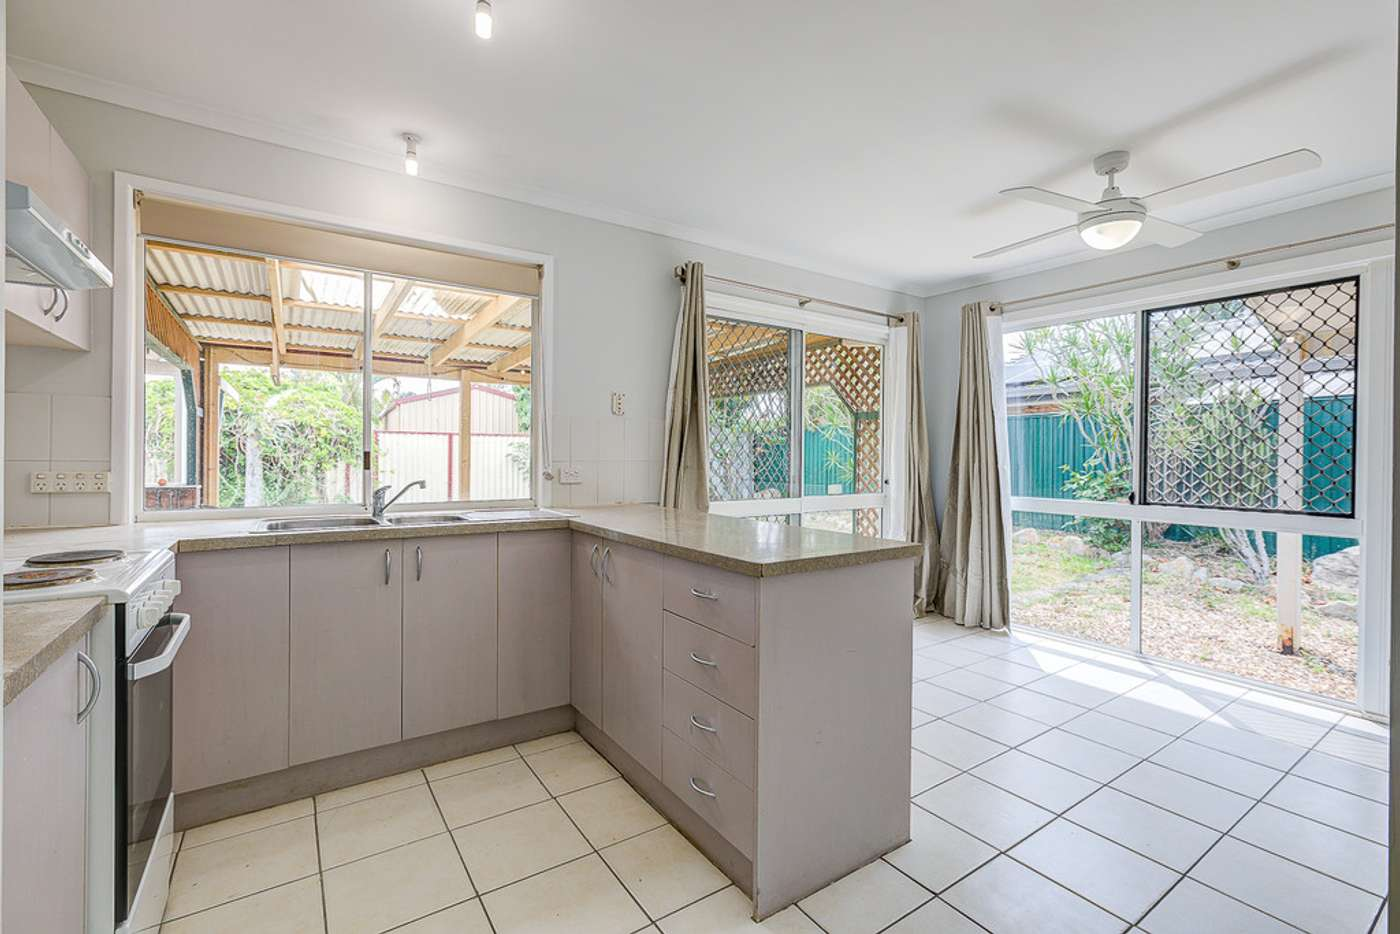 Sixth view of Homely house listing, 33 Kilby Street, Crestmead QLD 4132